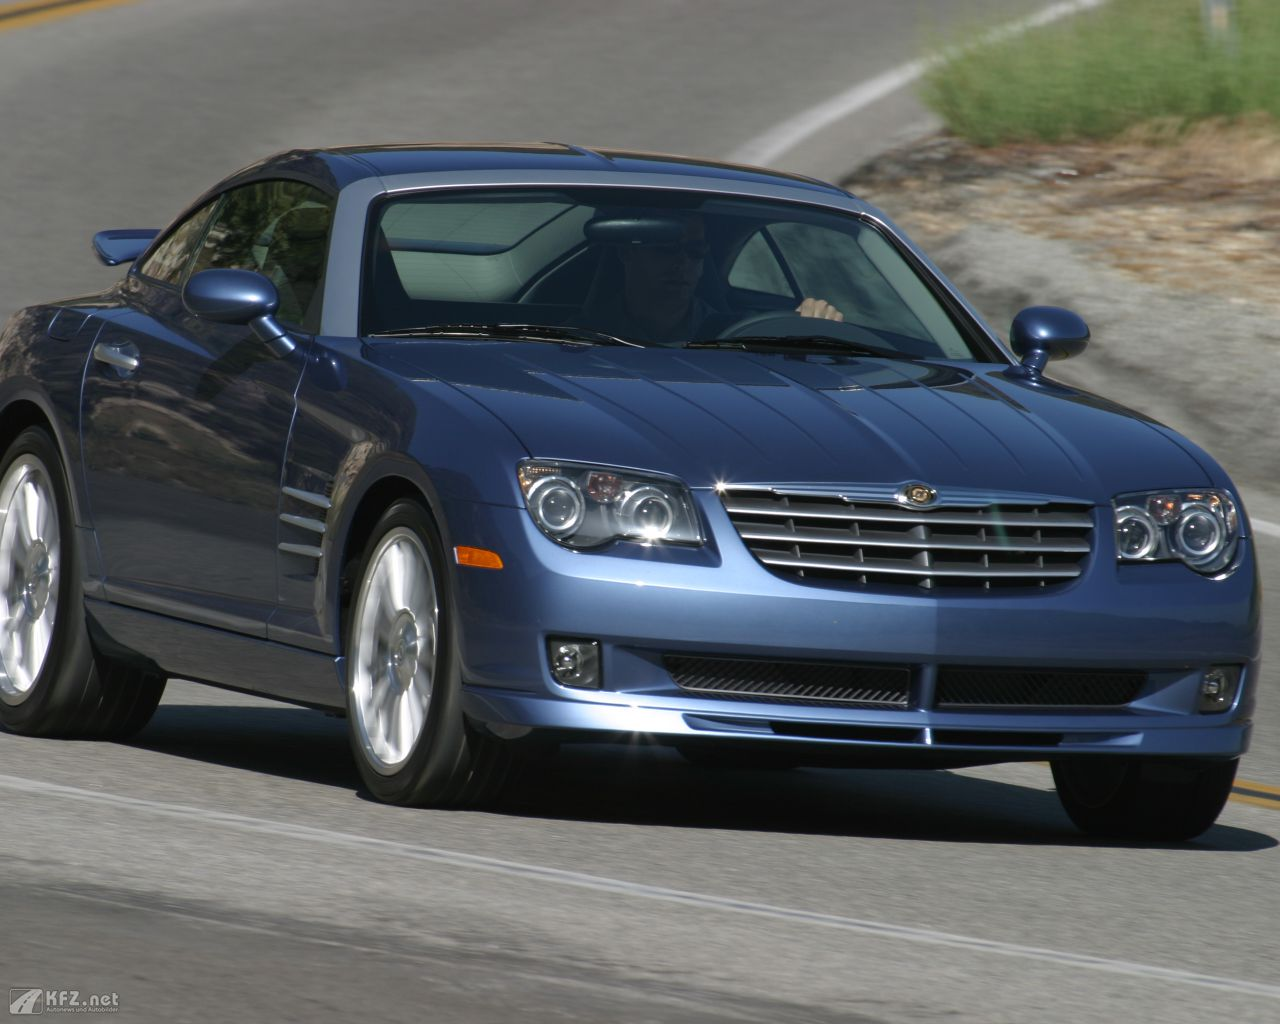 chrysler-crossfire-1280x1024-7